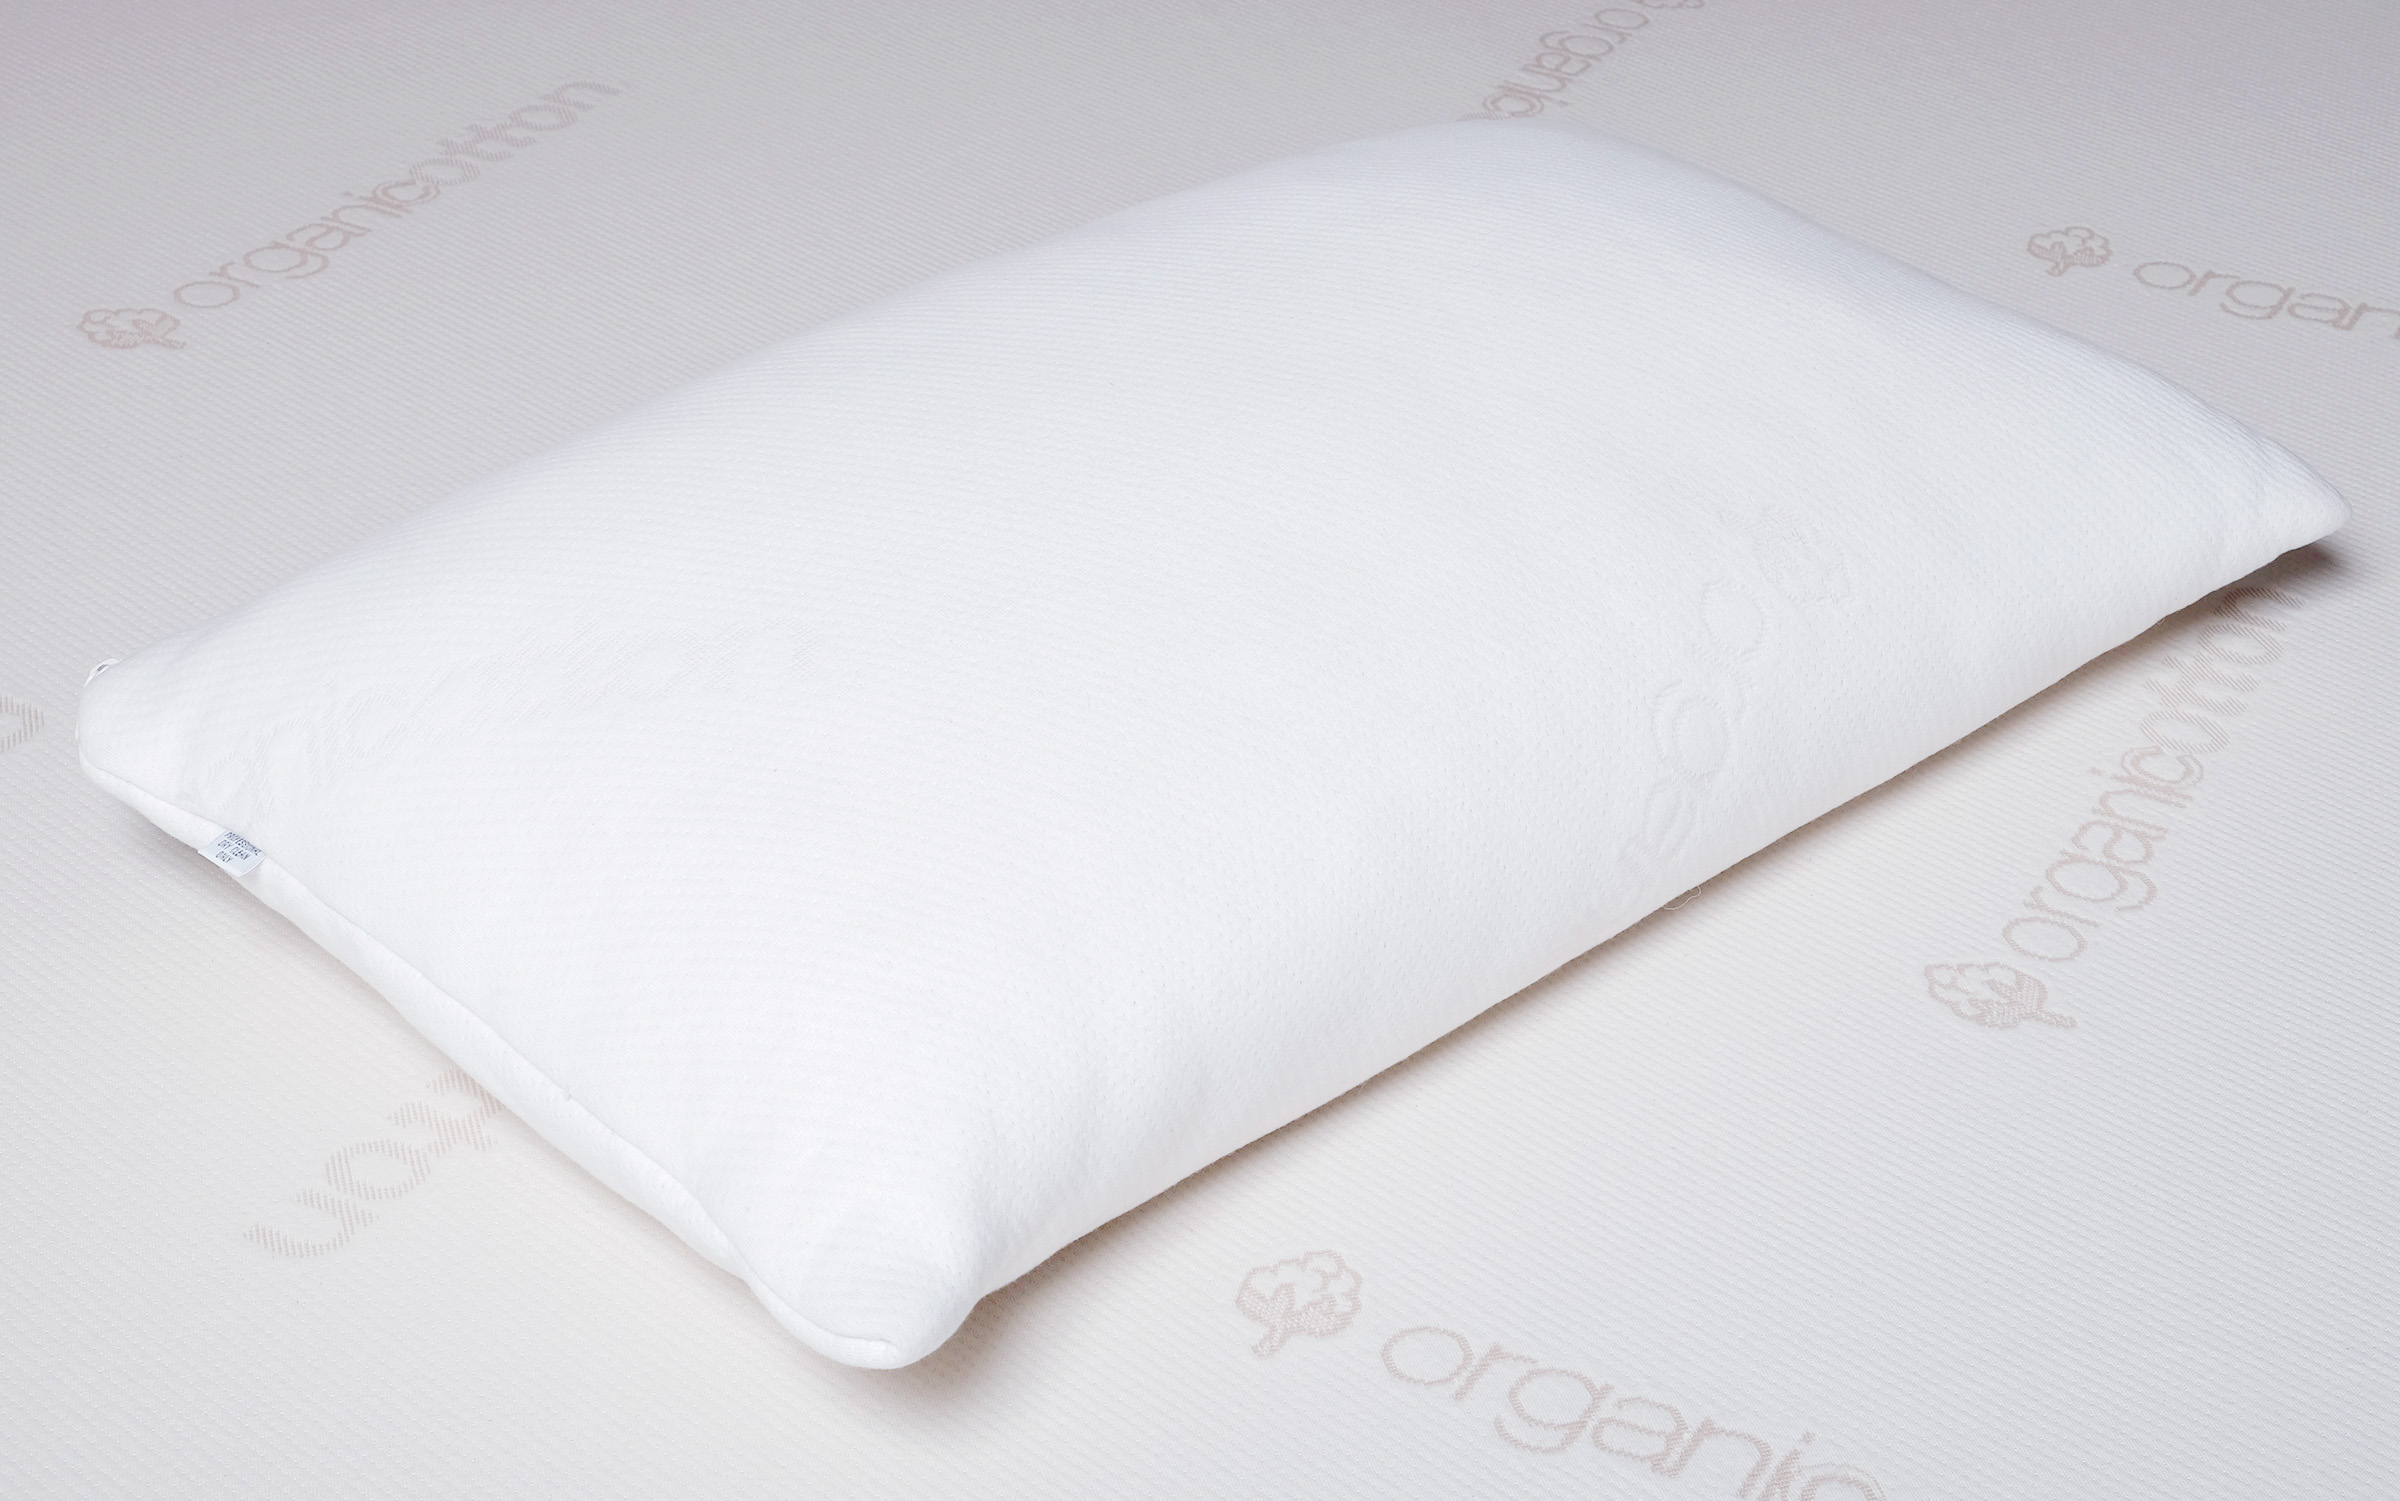 Natural shredded latex pillow allows for easy adjustment for firmness and loft.